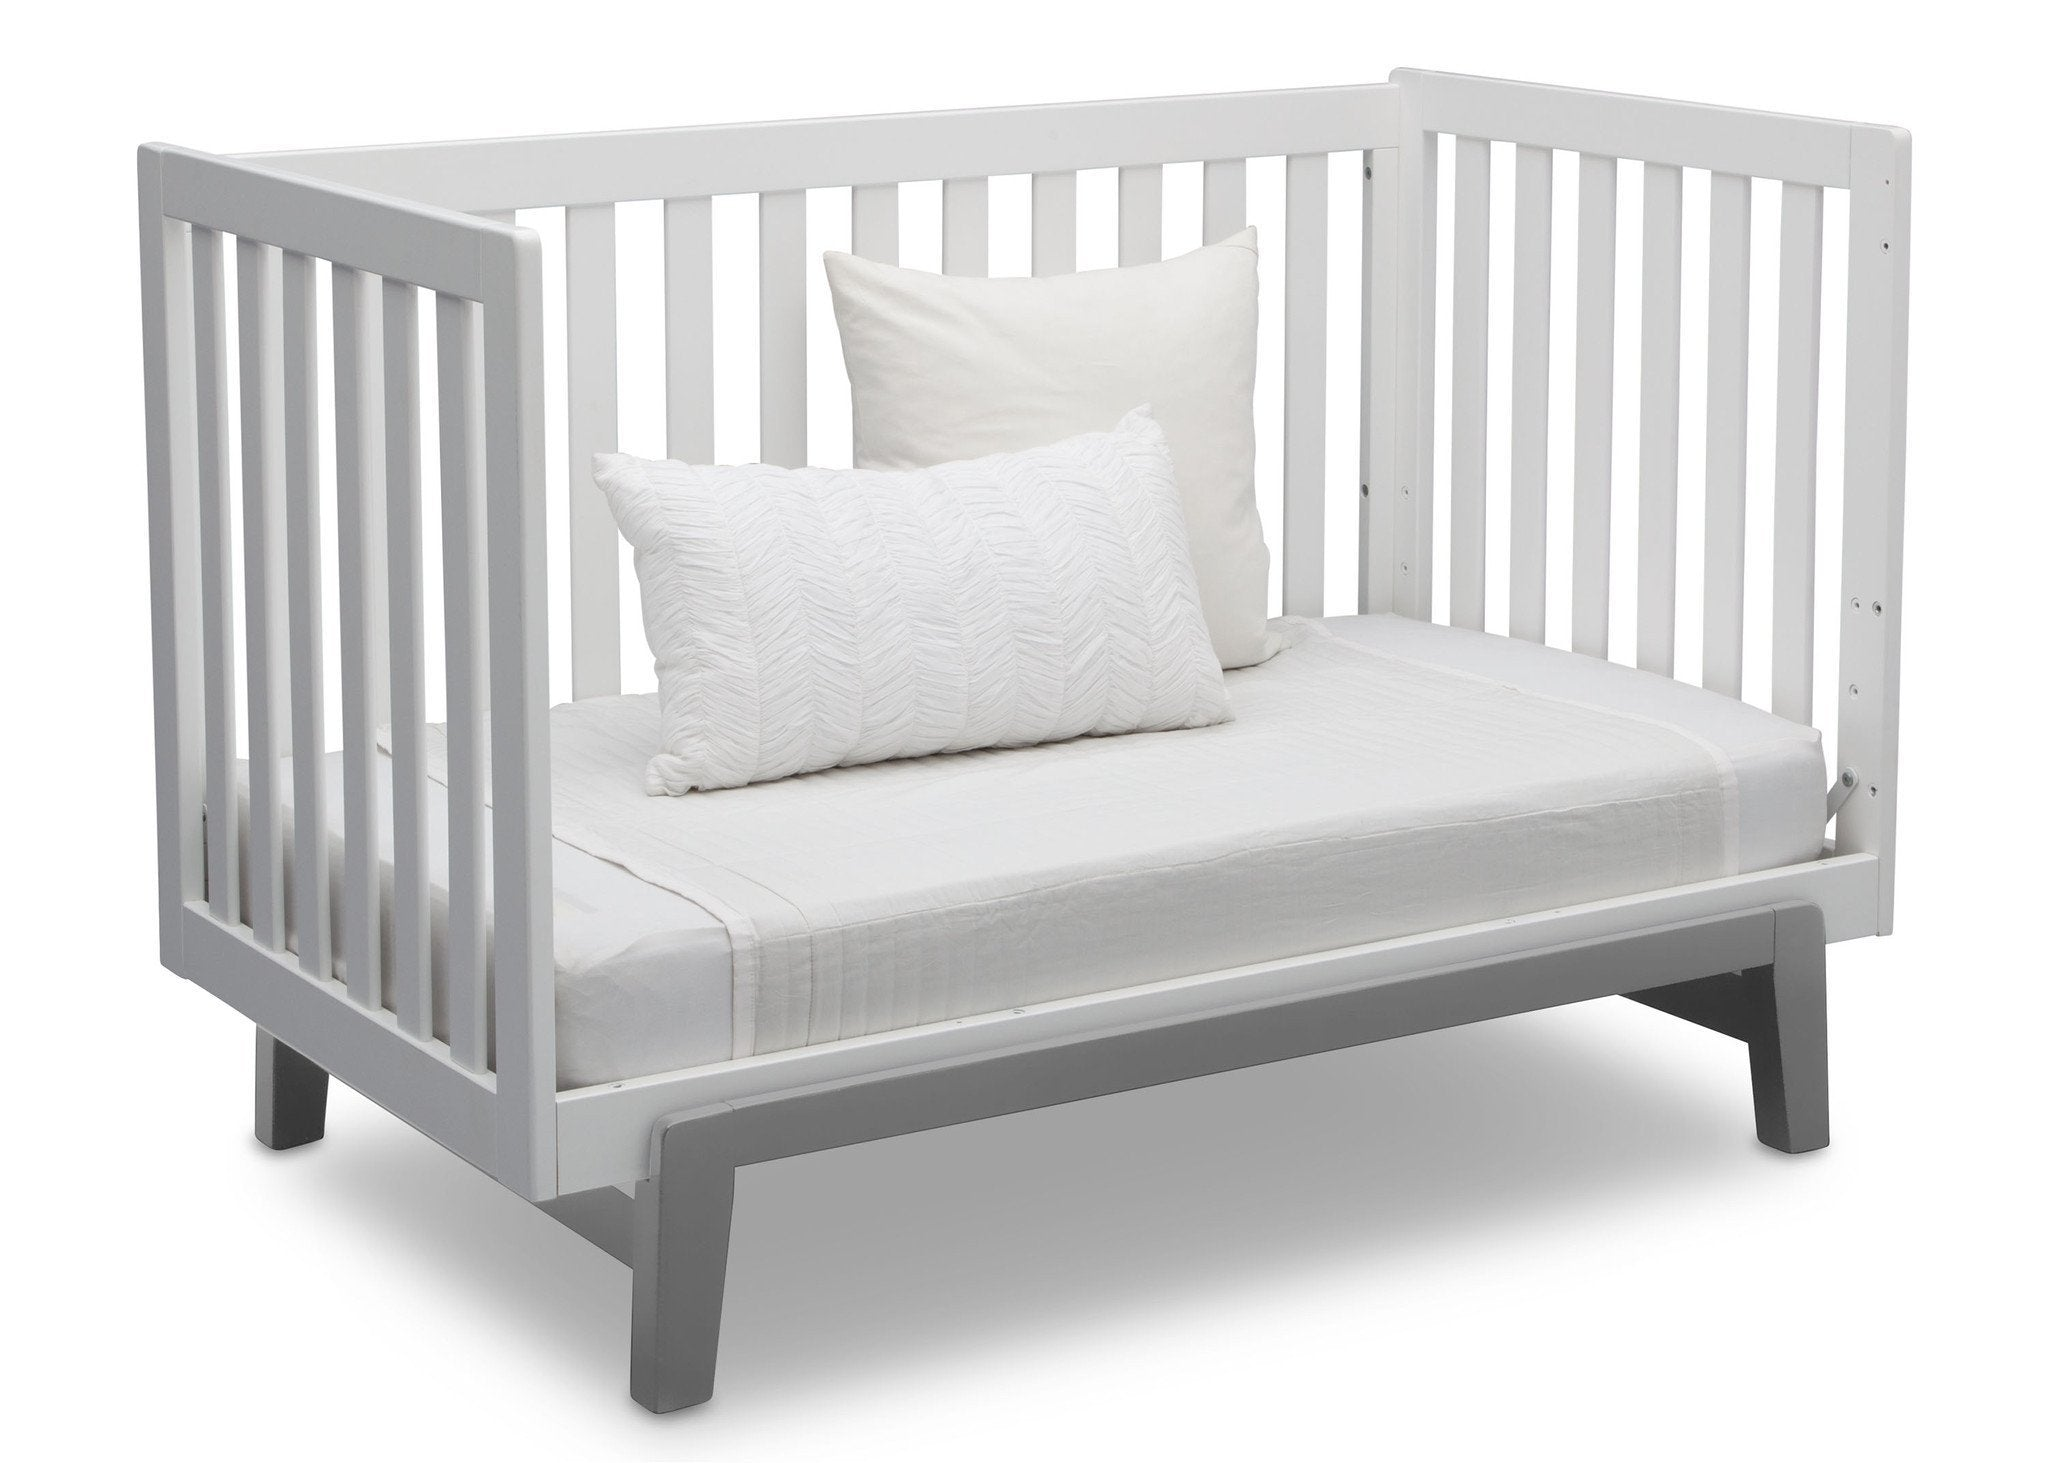 Delta Children Bianca White with Grey (166) Aster 3-in-1 Crib, Daybed Conversion b8b